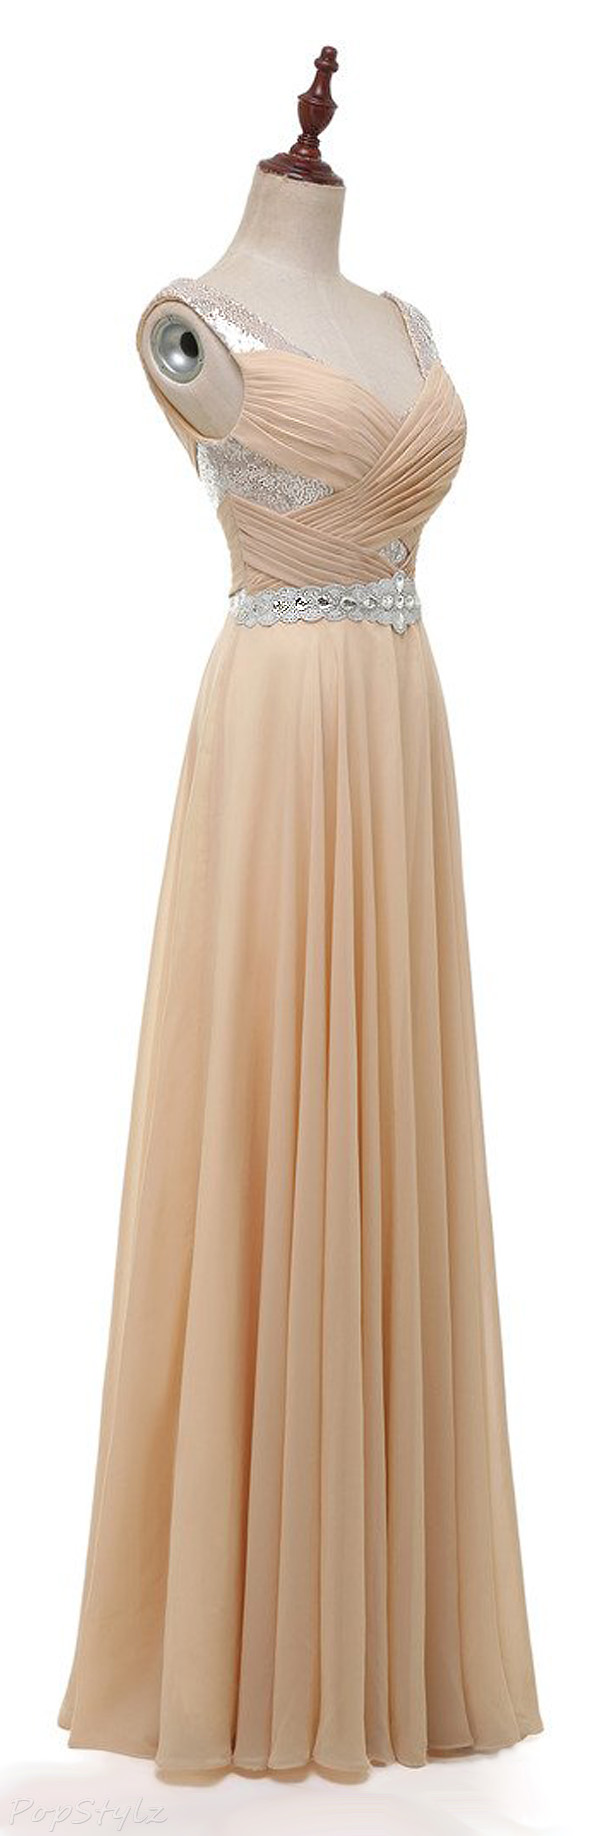 Solovedress Beaded A-Line Evening Gown